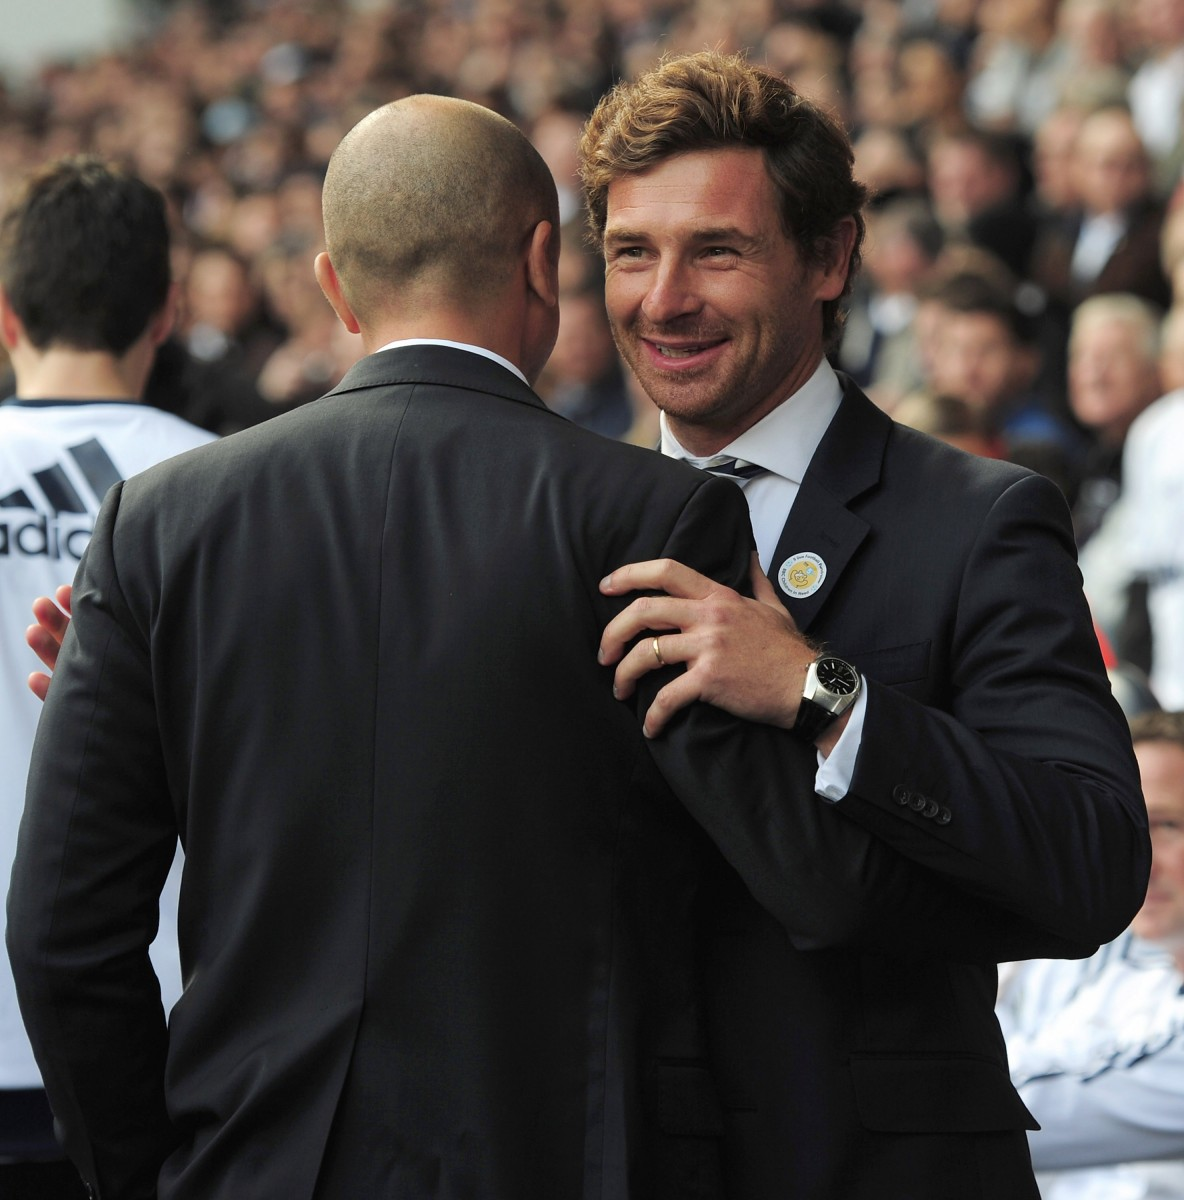 Tottenham manager Andre Villas-Boas greets Chelsea manager Roberto Di Matteo prior to their teams' clash on Saturday in the English Premier League. (Shaun Botterill/Getty Images)